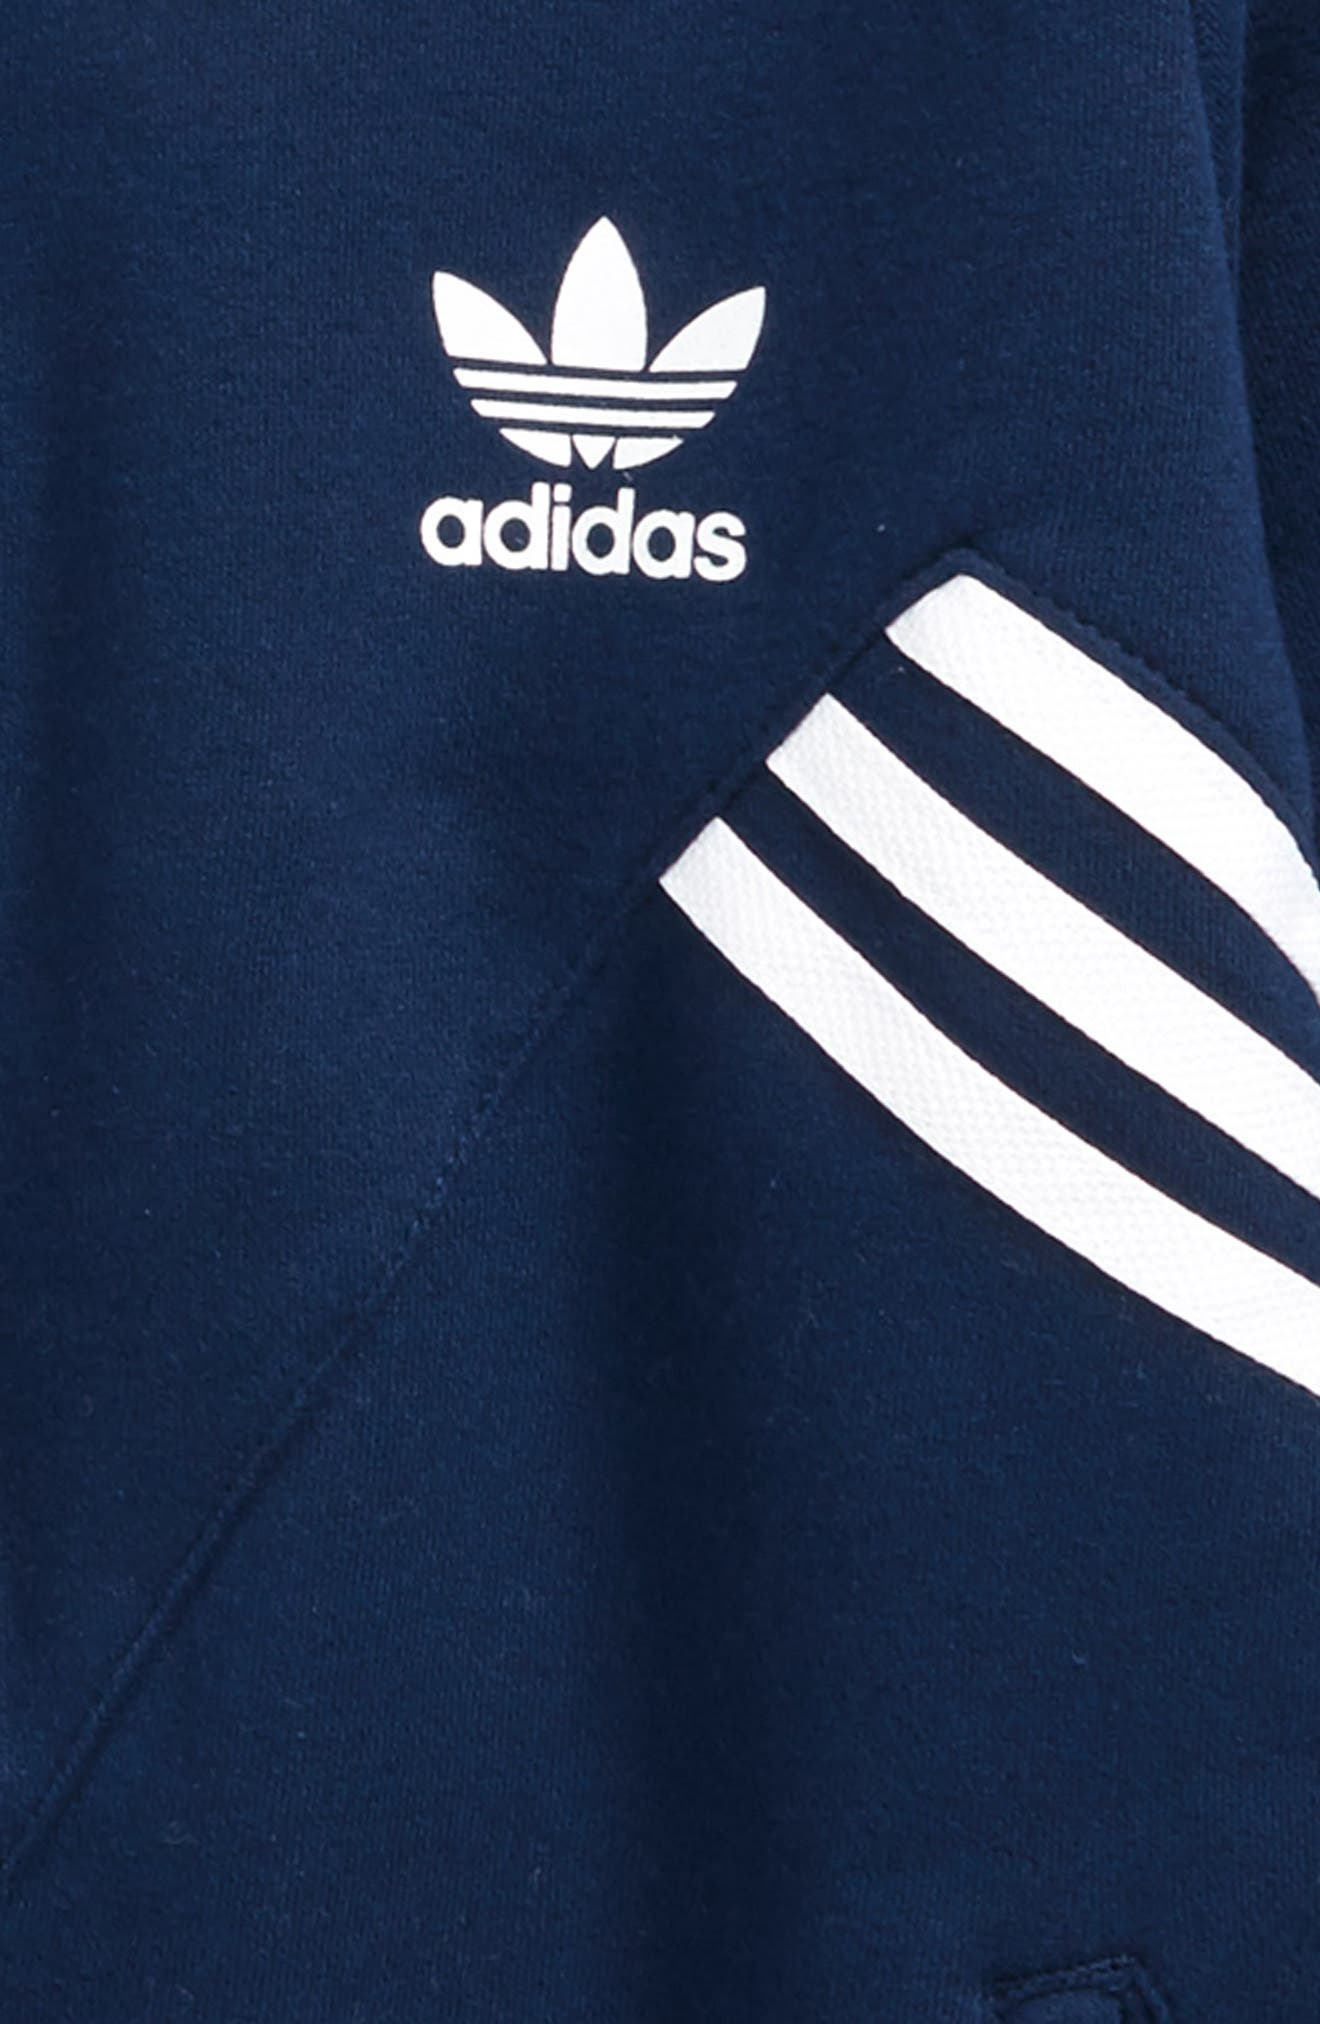 adidas SST Track Jacket,                             Alternate thumbnail 2, color,                             415